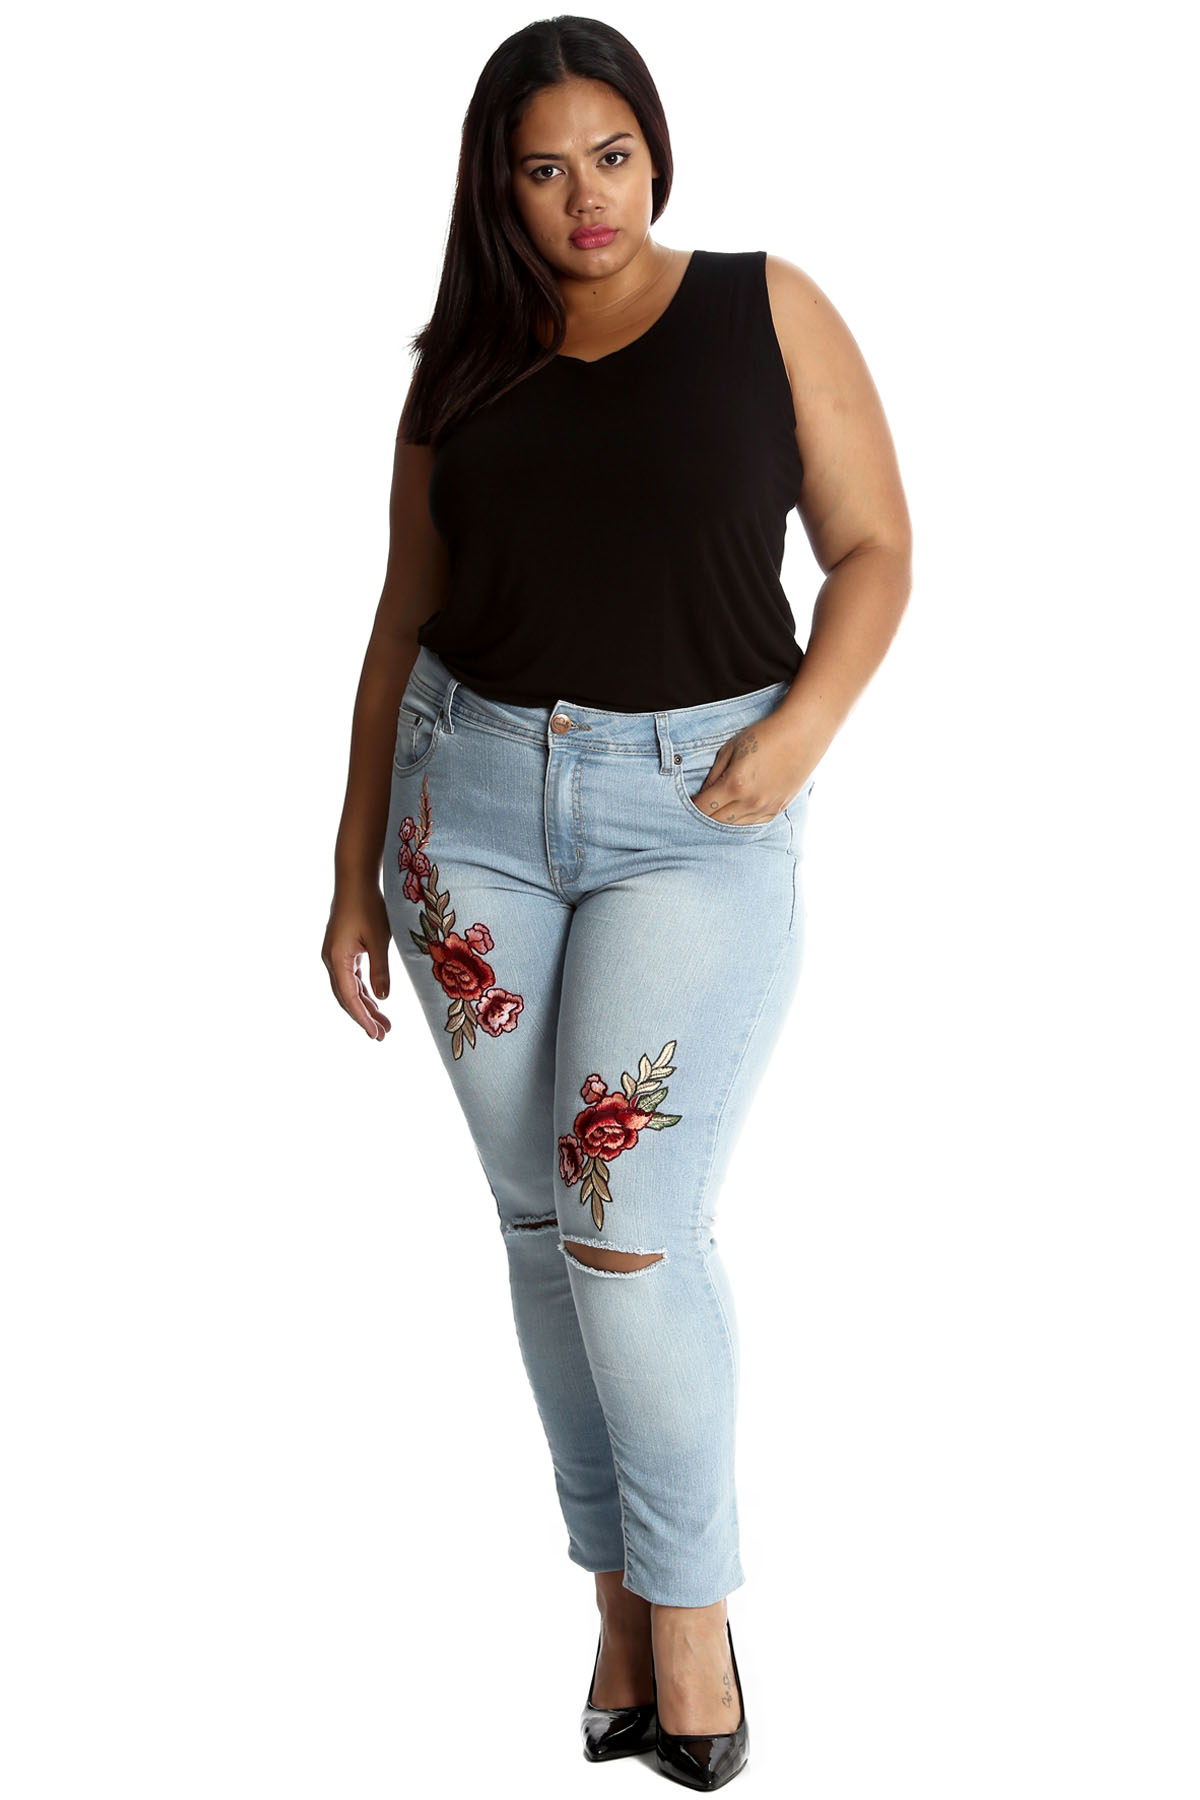 neu frauen bergr e jeans damen hose floral bestickt pant patch modern nouvelle ebay. Black Bedroom Furniture Sets. Home Design Ideas